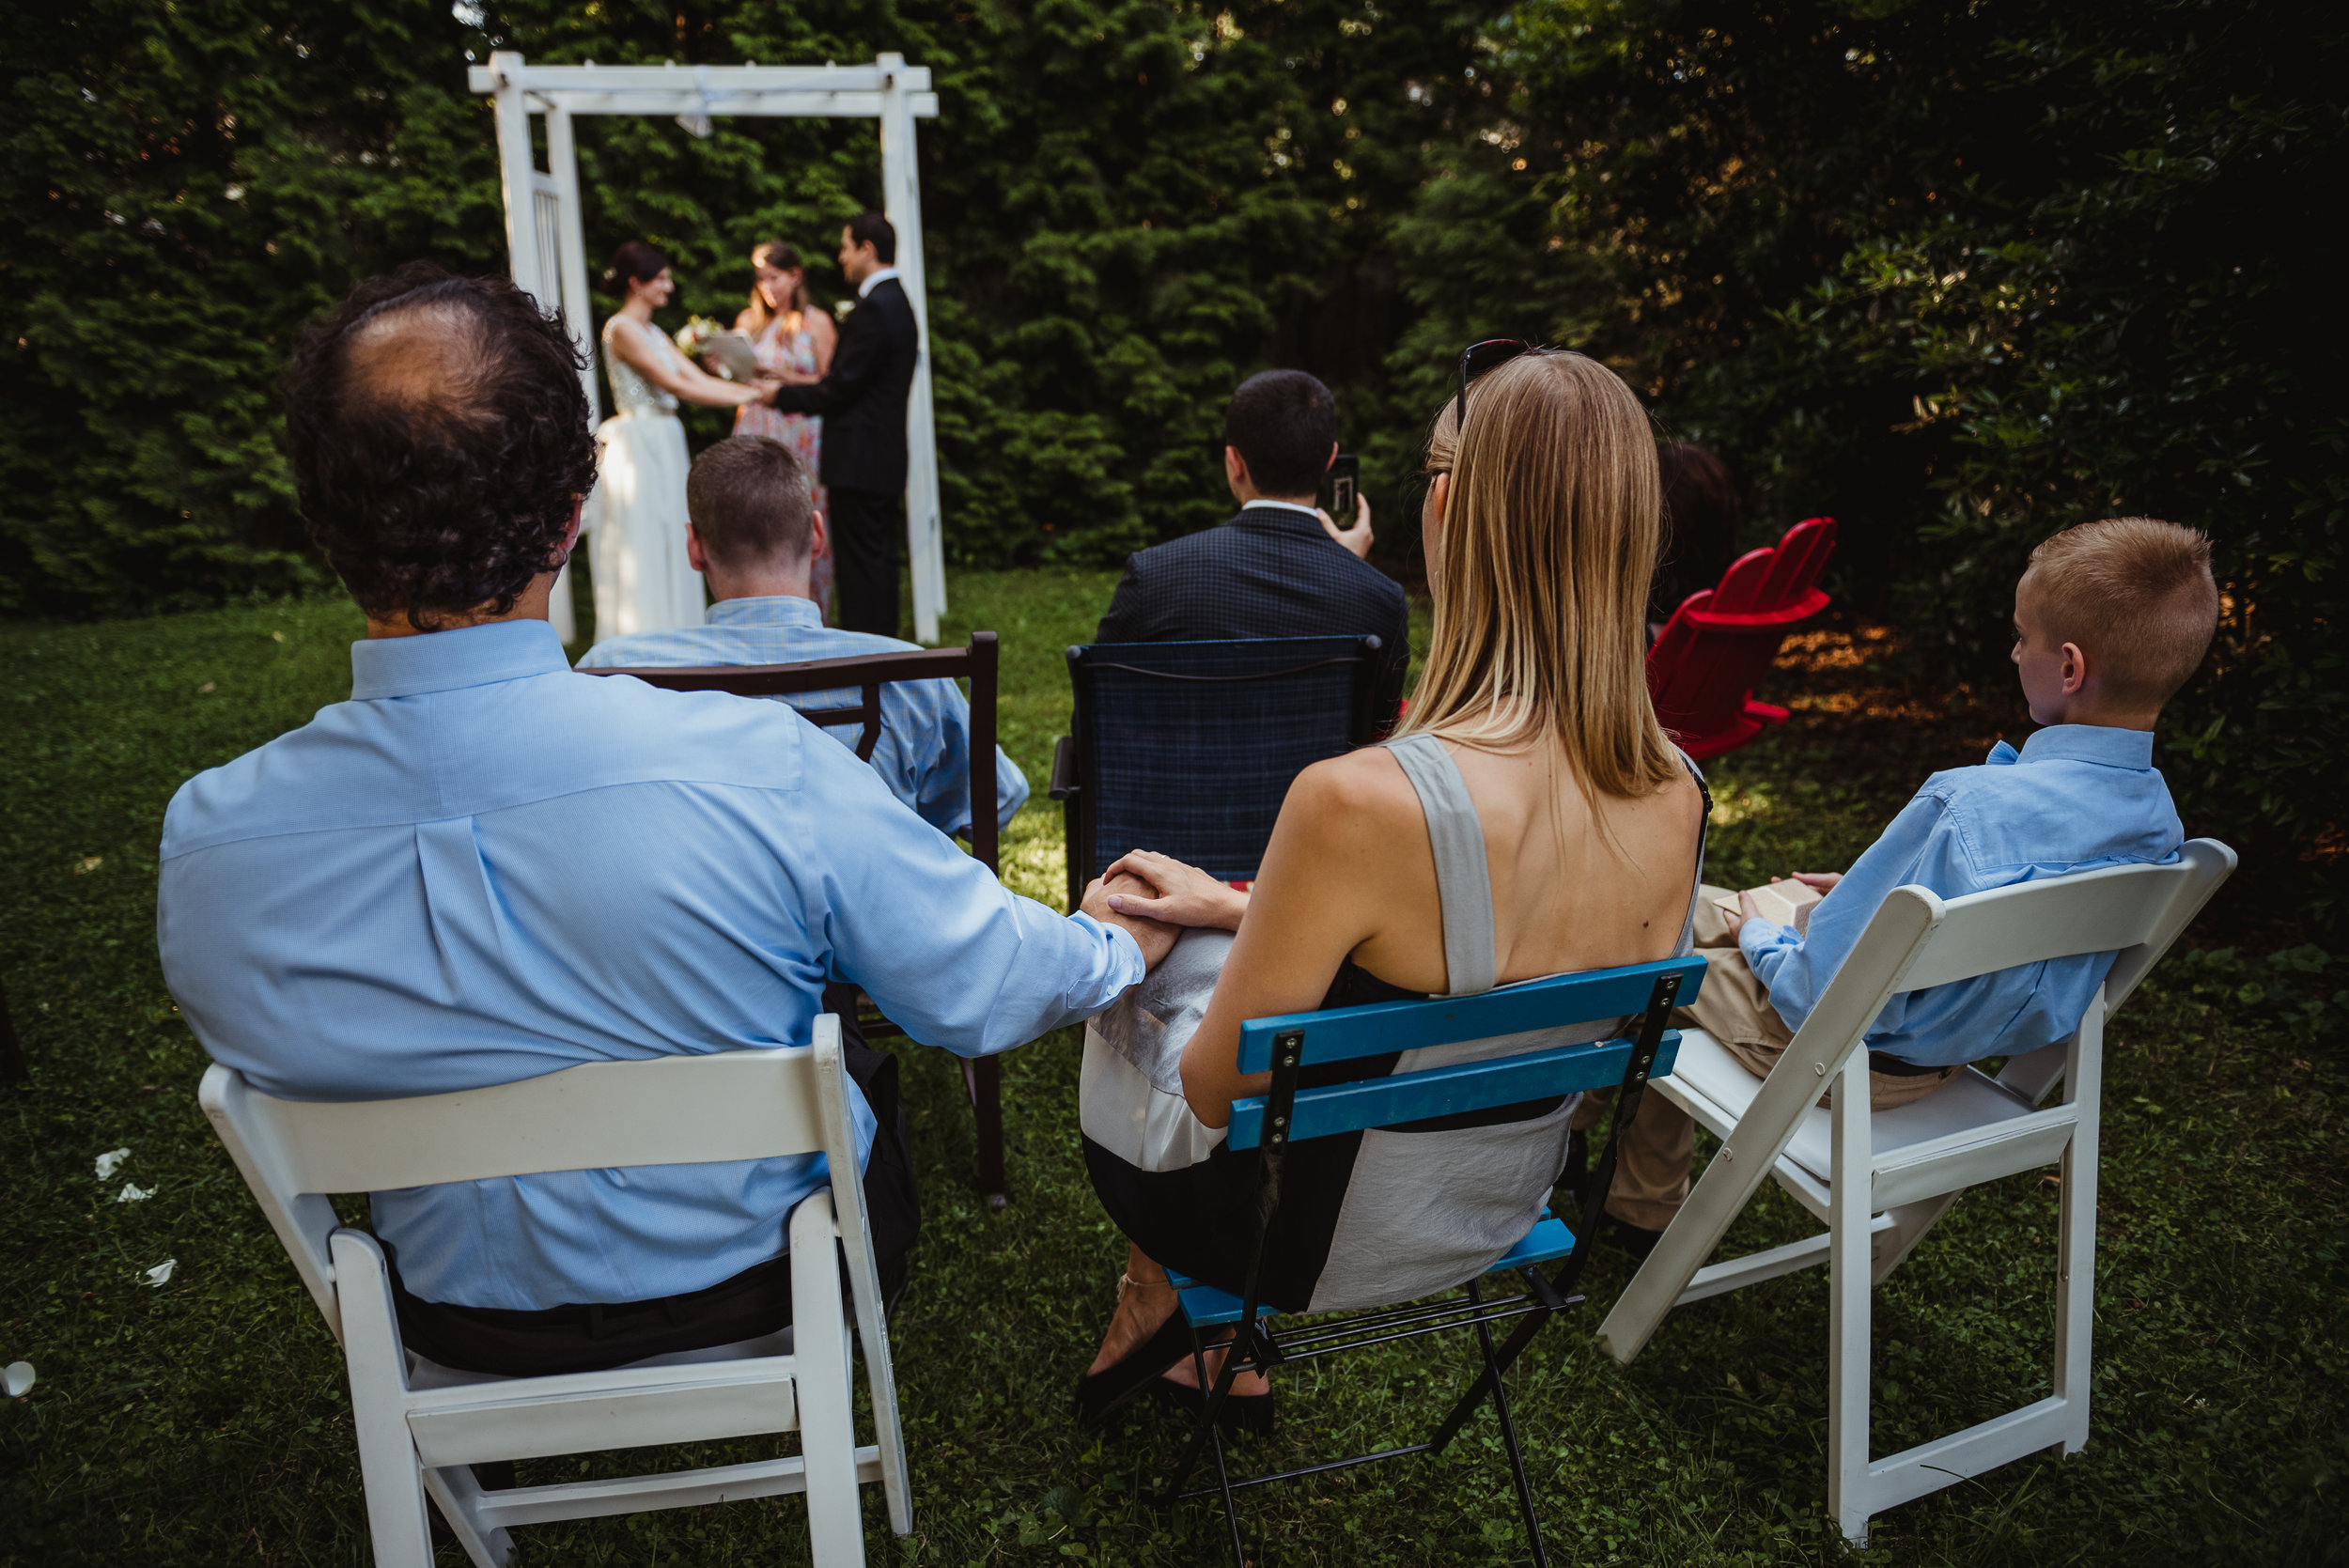 Raleigh-wedding-photographer-backyard-ceremony-intimate-rose-trail-images.jpg